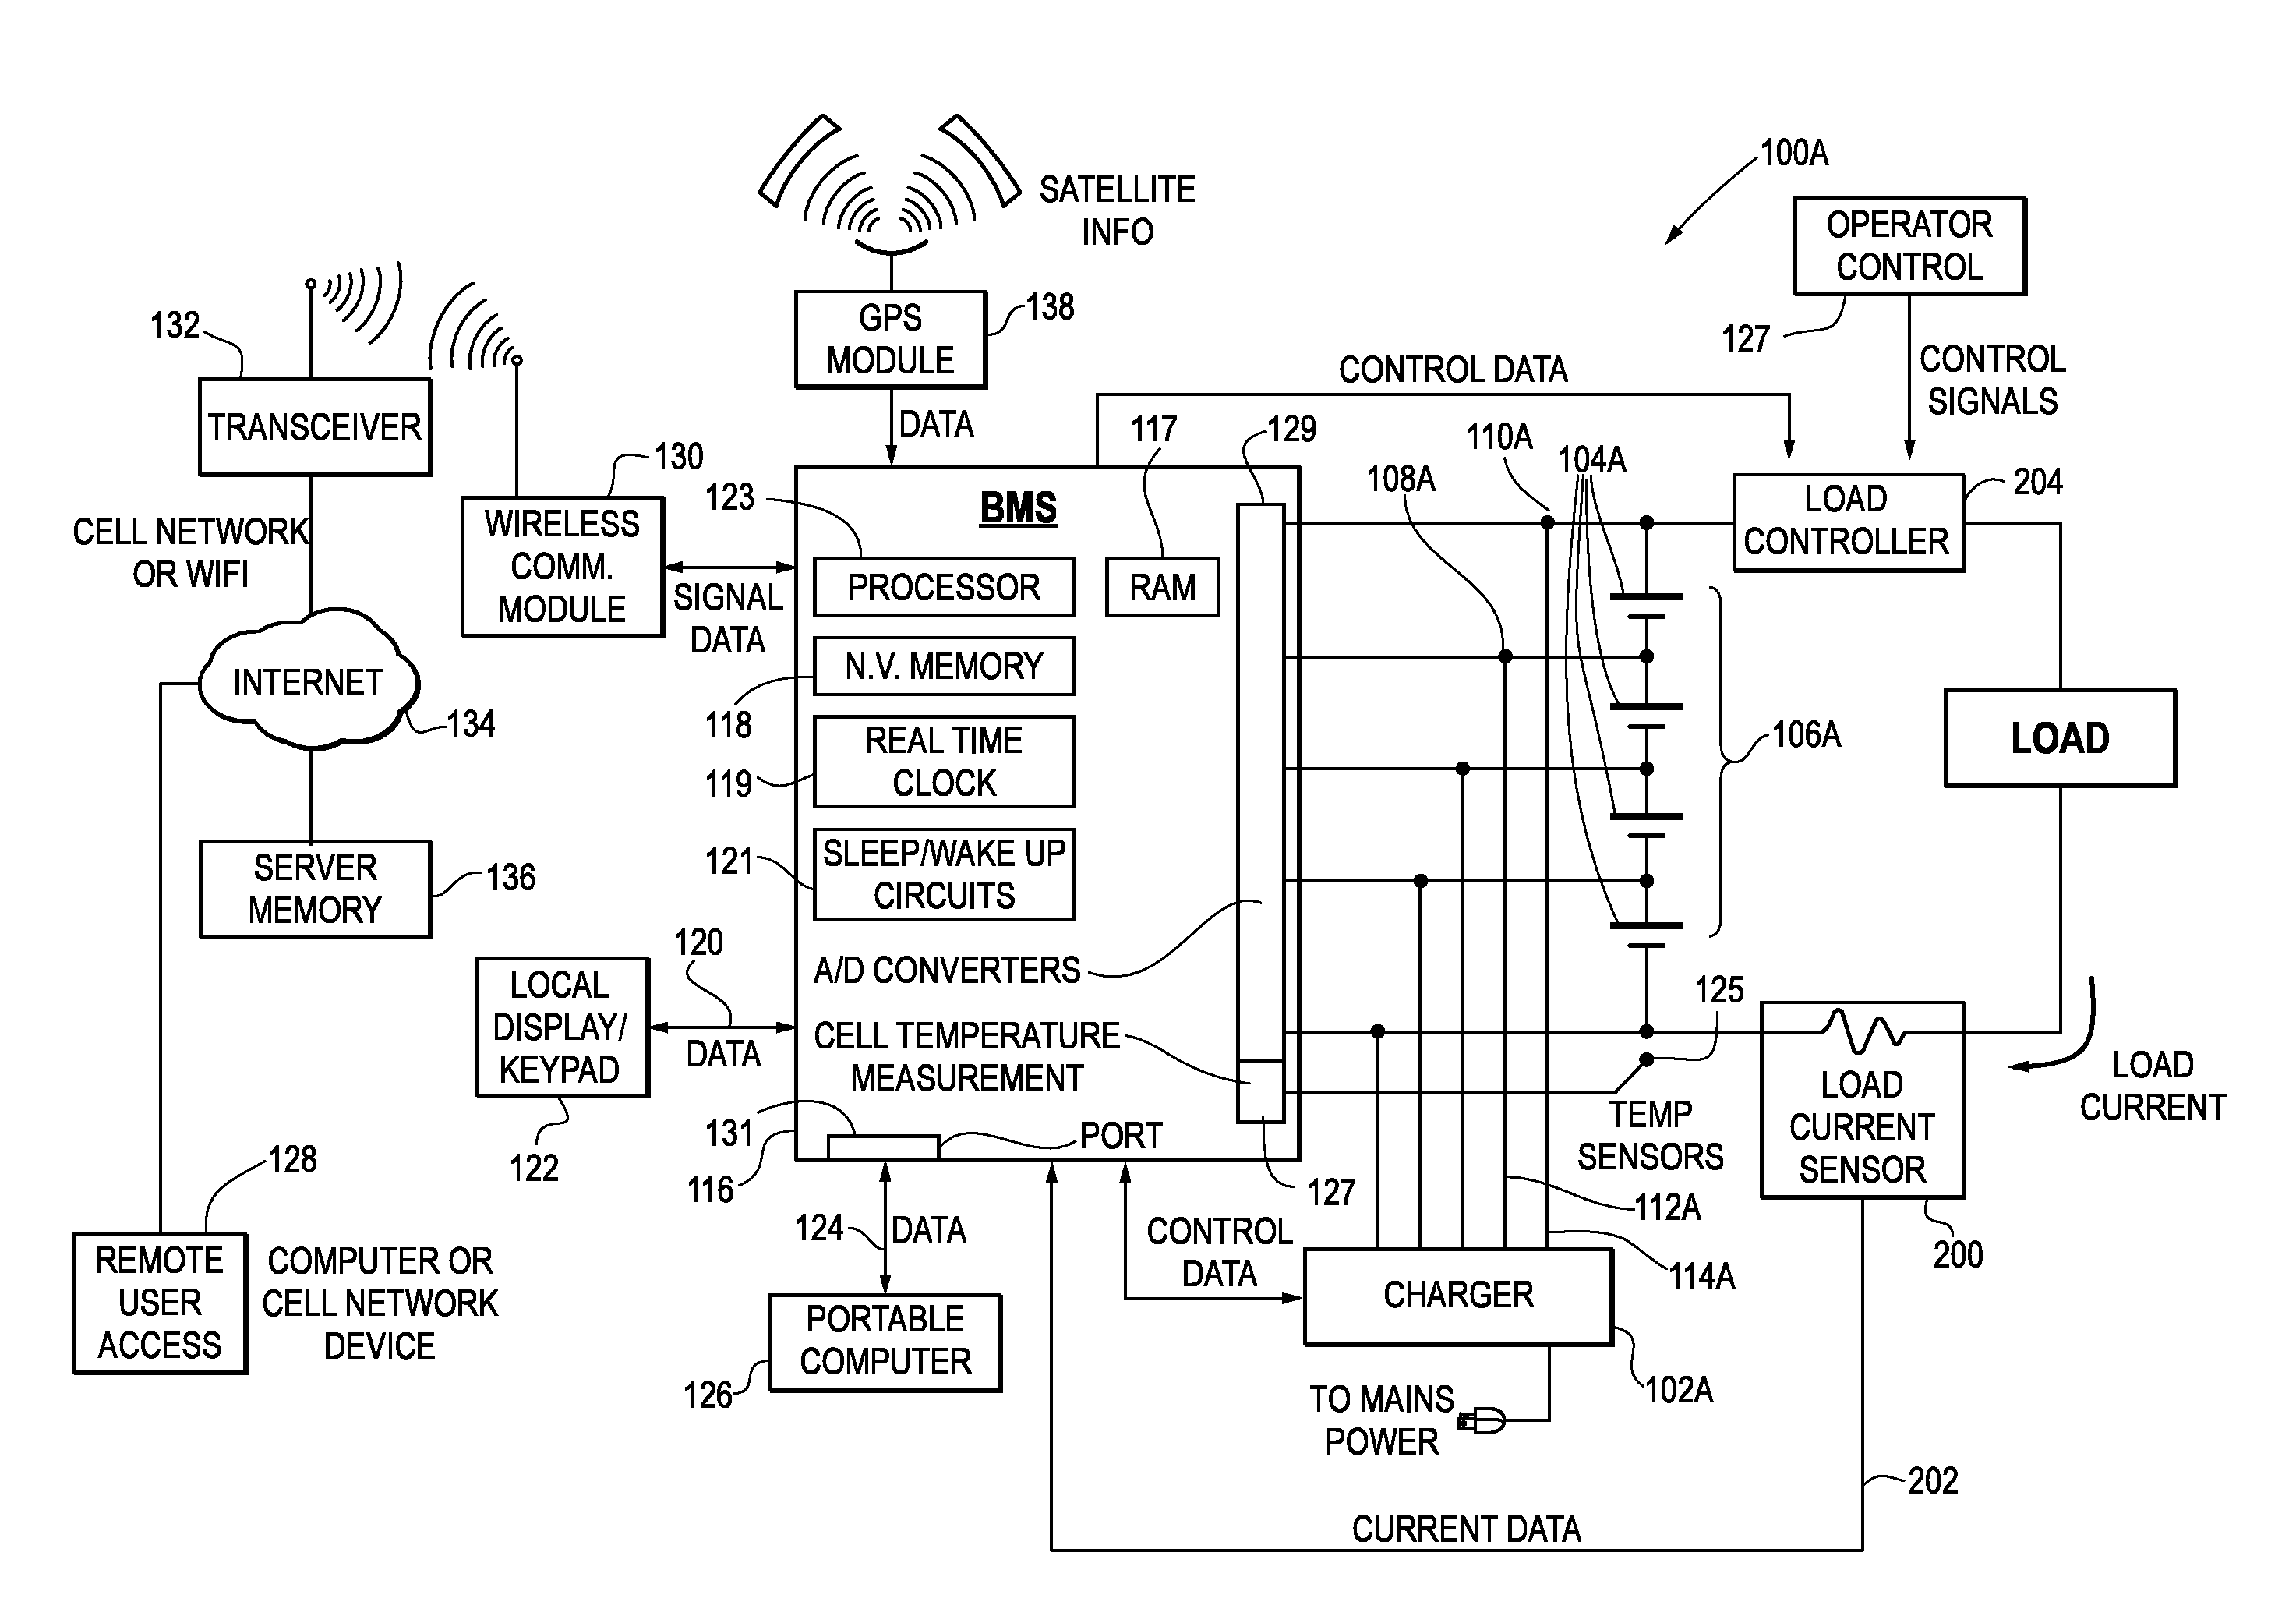 Lowrance Nmea Cable Wiring Diagram Trusted Diagrams Propel Gps Schematics Standard 5 Pin Pinout